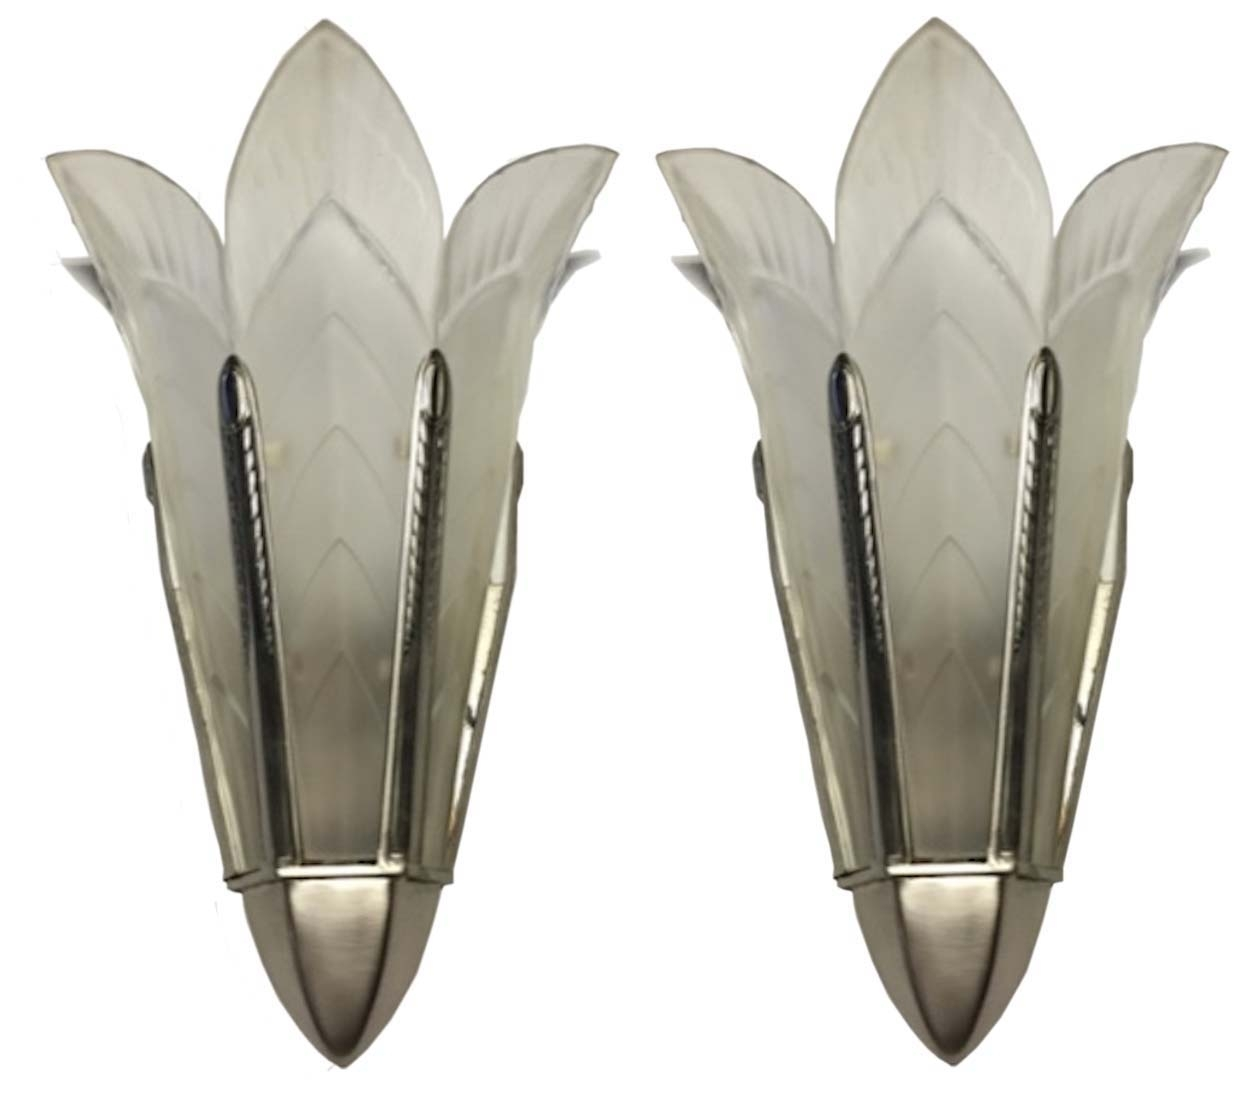 A Pair Of Signed Sabino French Art Deco Wall Sconces | Modernism within Art Deco Wall Sconces (Image 2 of 20)